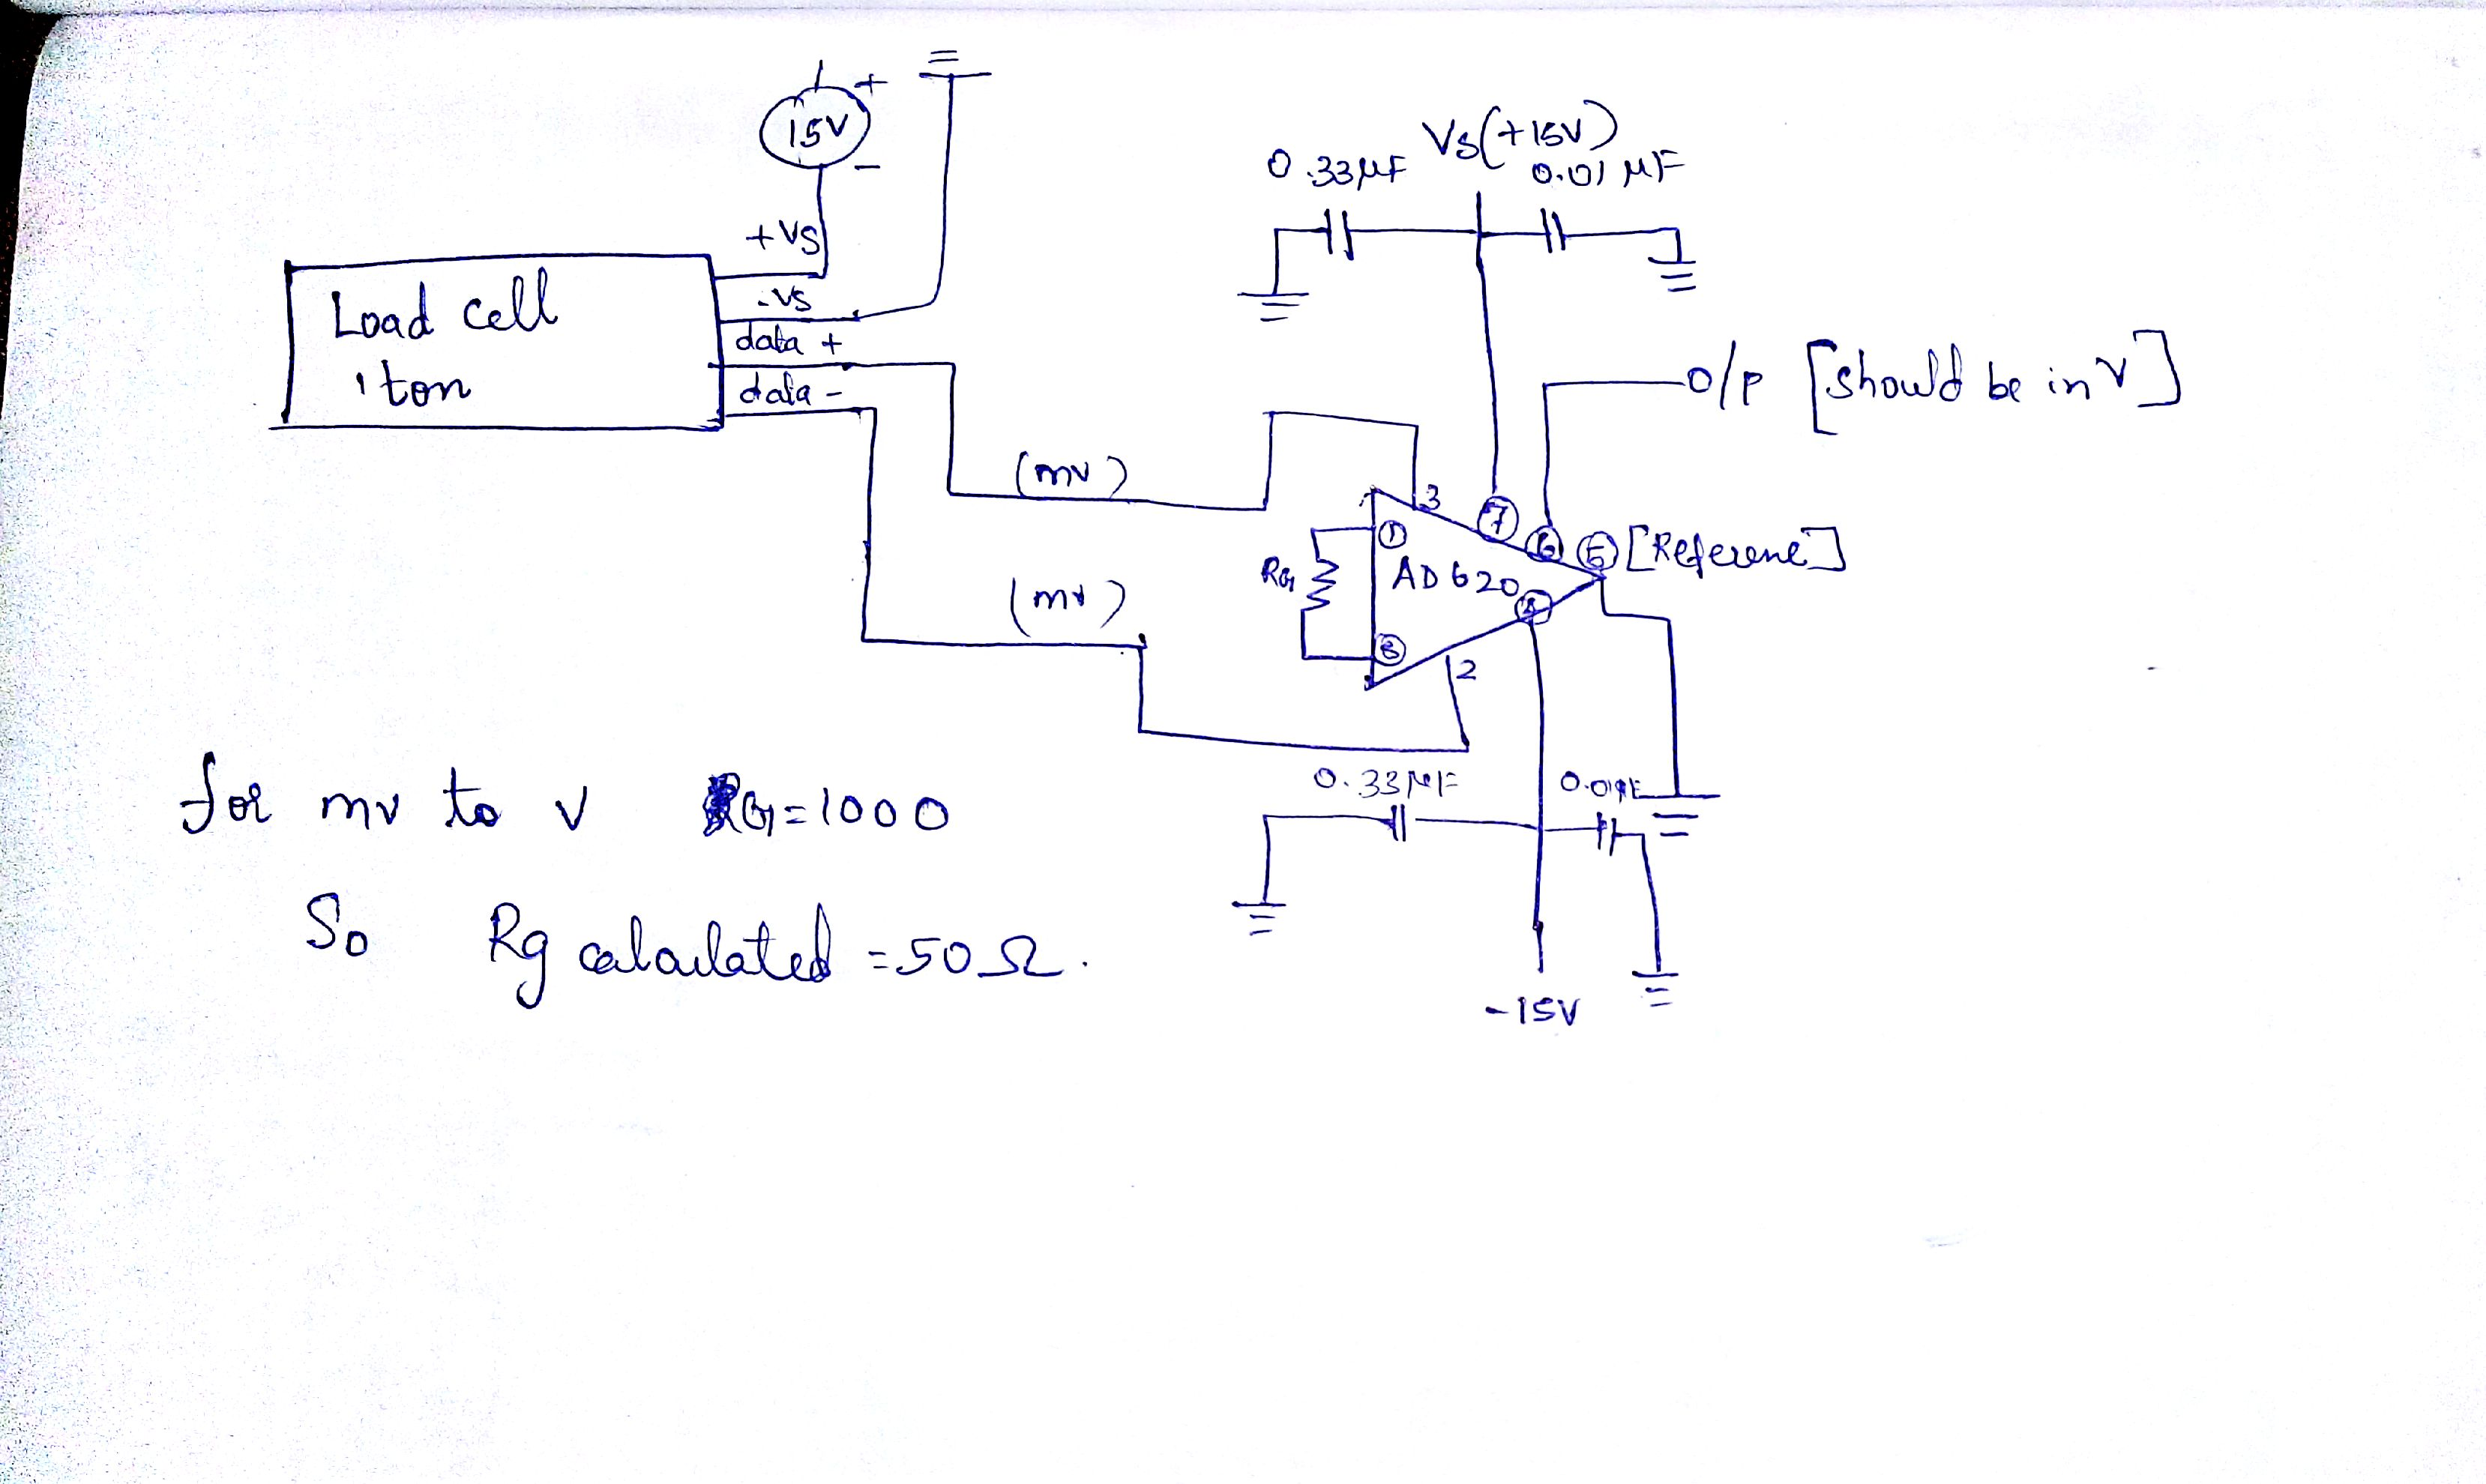 load cell amplification using AD620   Electronics Forum (Circuits ...